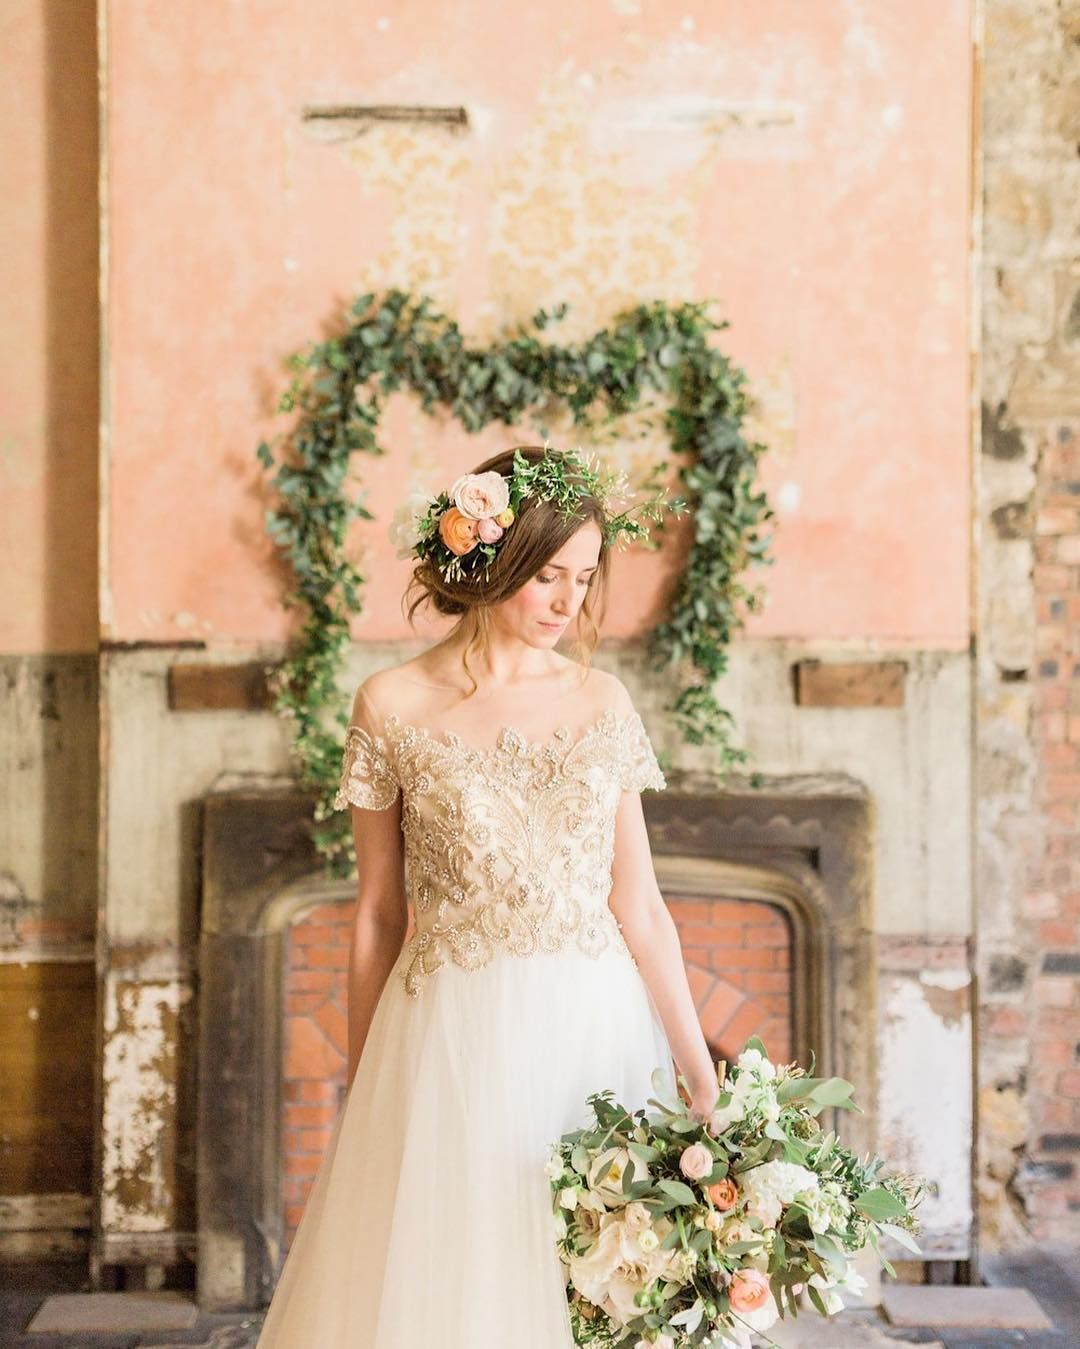 So in love with the florals against the walls of this beautiful venue.  Discover more on our new blog post today - link in profile.  Thanks to everyone who took part -  venue: @brinkburnnorthumberland  photography: @katymelling  florals: @bels_flowers  hair: @tinaelliottstyling  calligraphy: @brahminletteringco  cakes: @the_master_cakesmith  silk ribbon: @katecullenstyle  tableware: @pettigrovelane  rose quartz ring: @thomassabo  ring box:  @the_mrs_box plus model April Bowden Make-up by Jo…